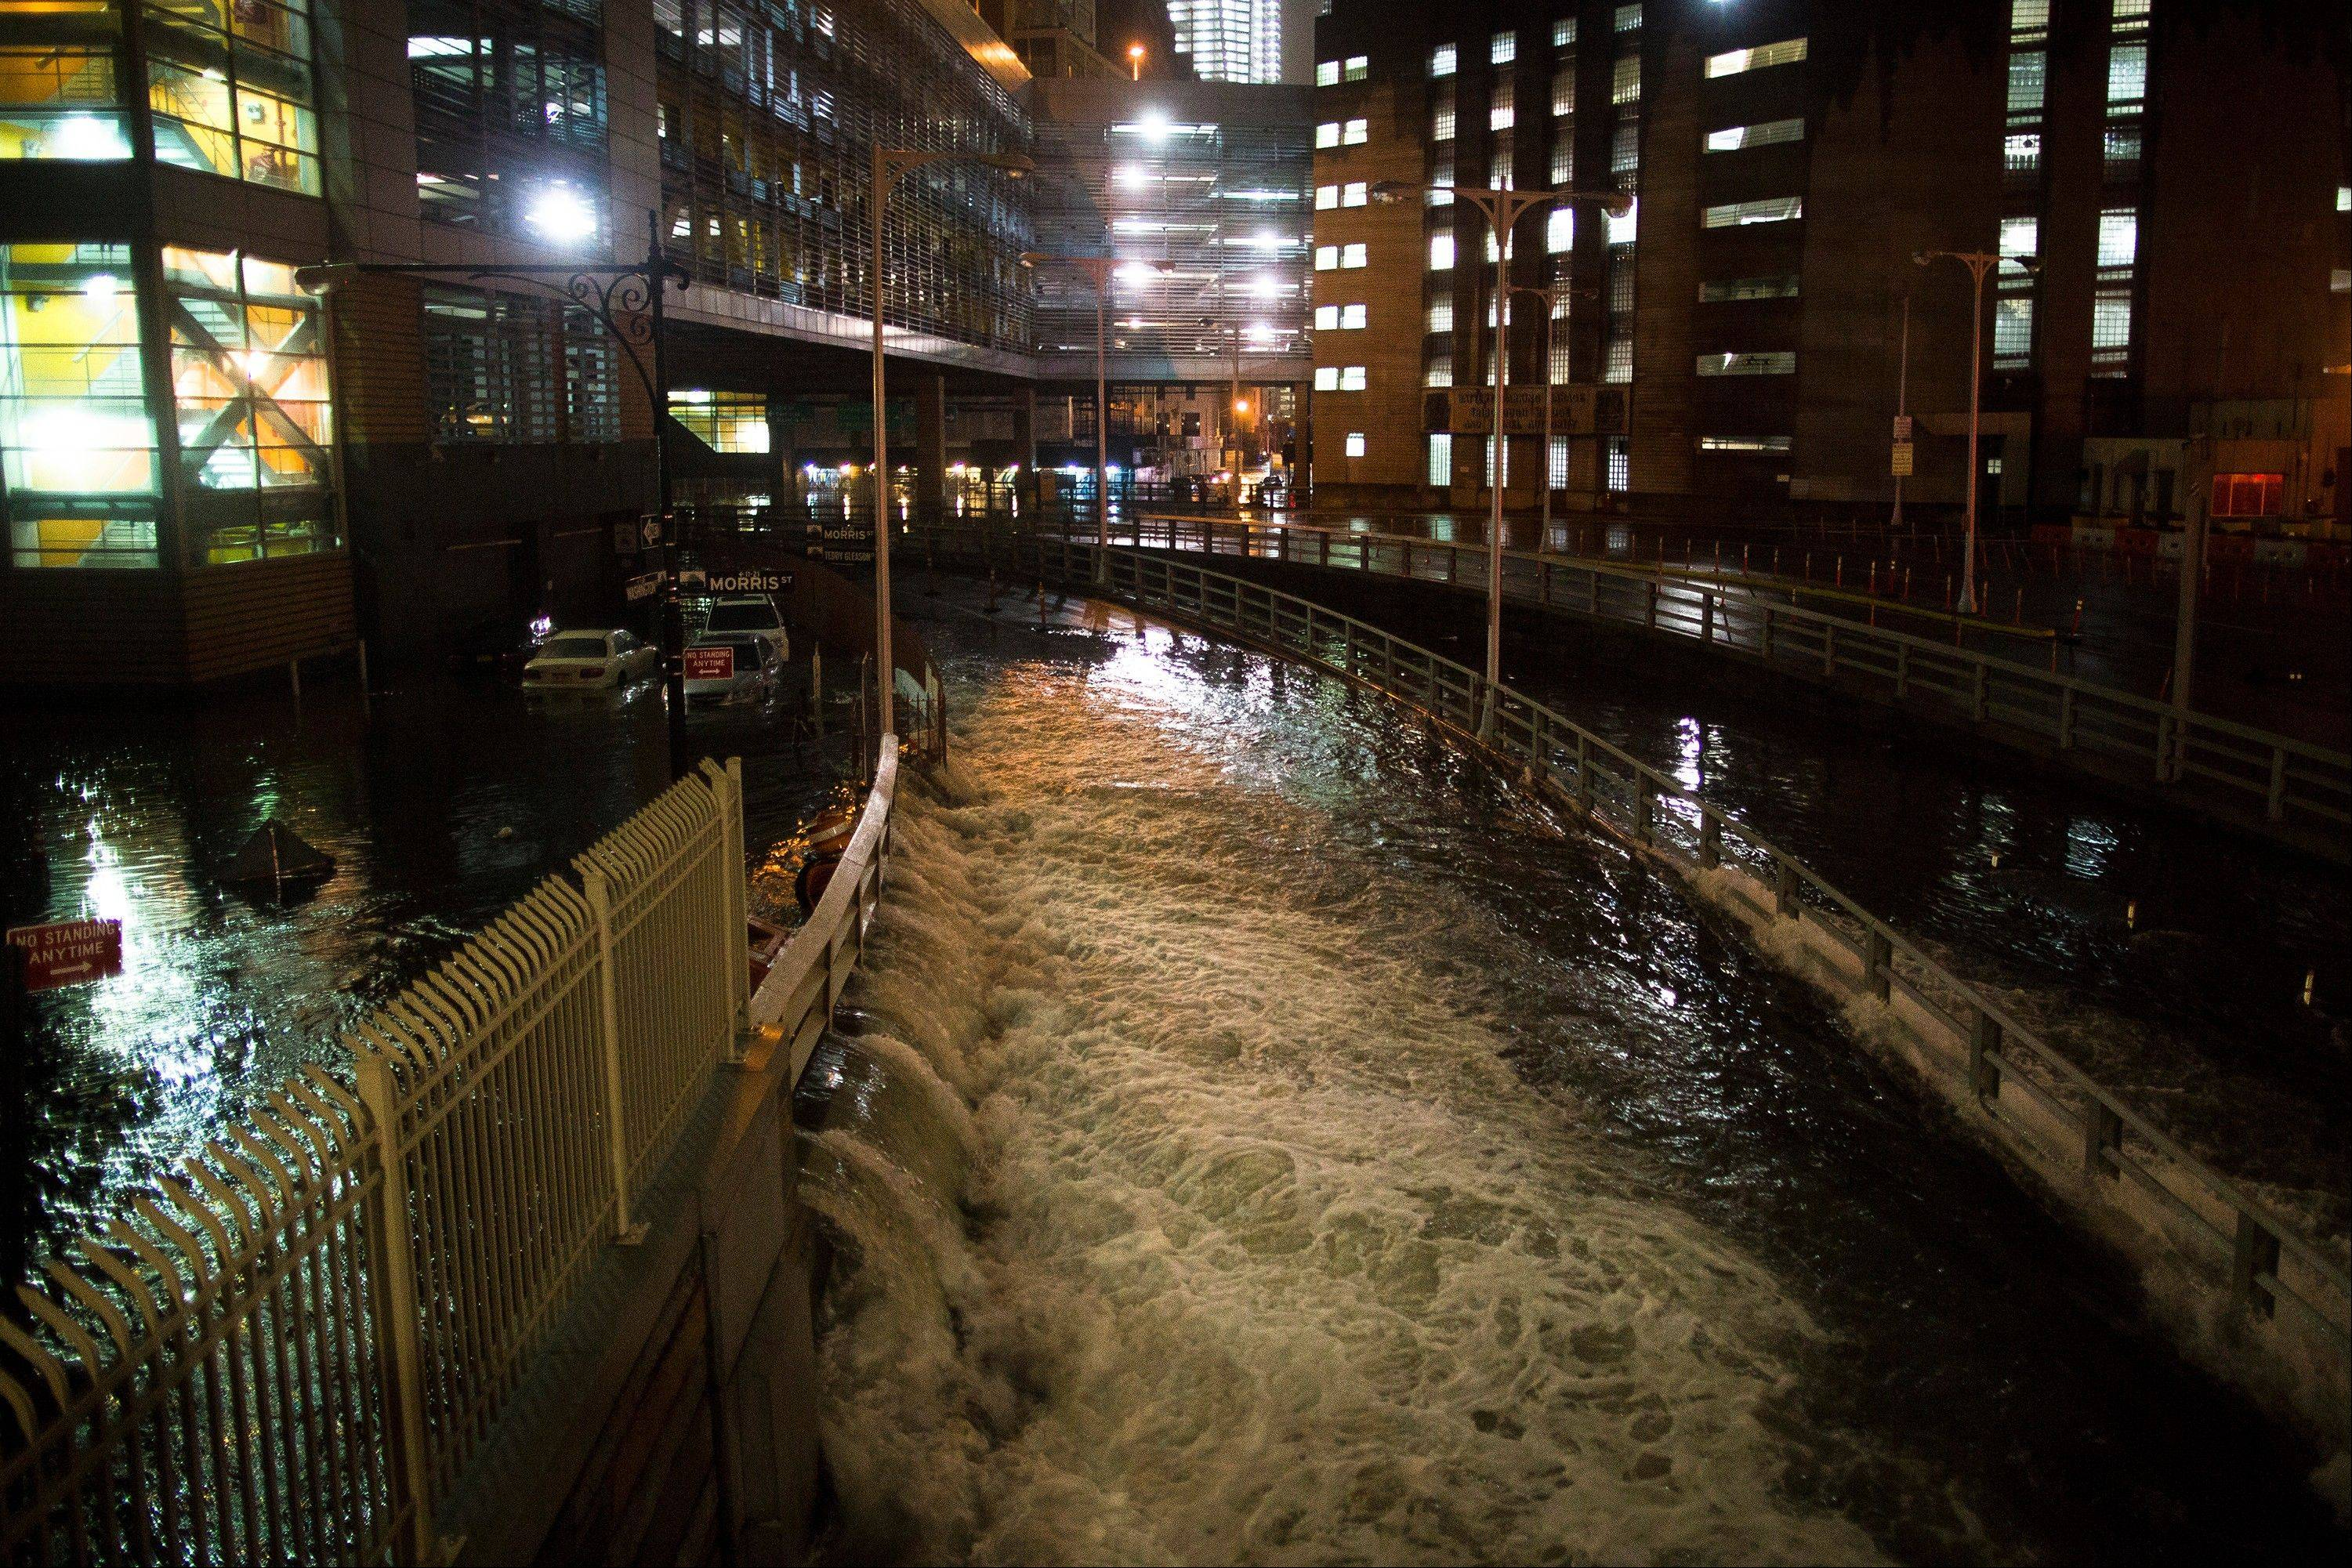 Sea water floods the entrance to the Brooklyn Battery Tunnel in New York during Superstorm Sandy.